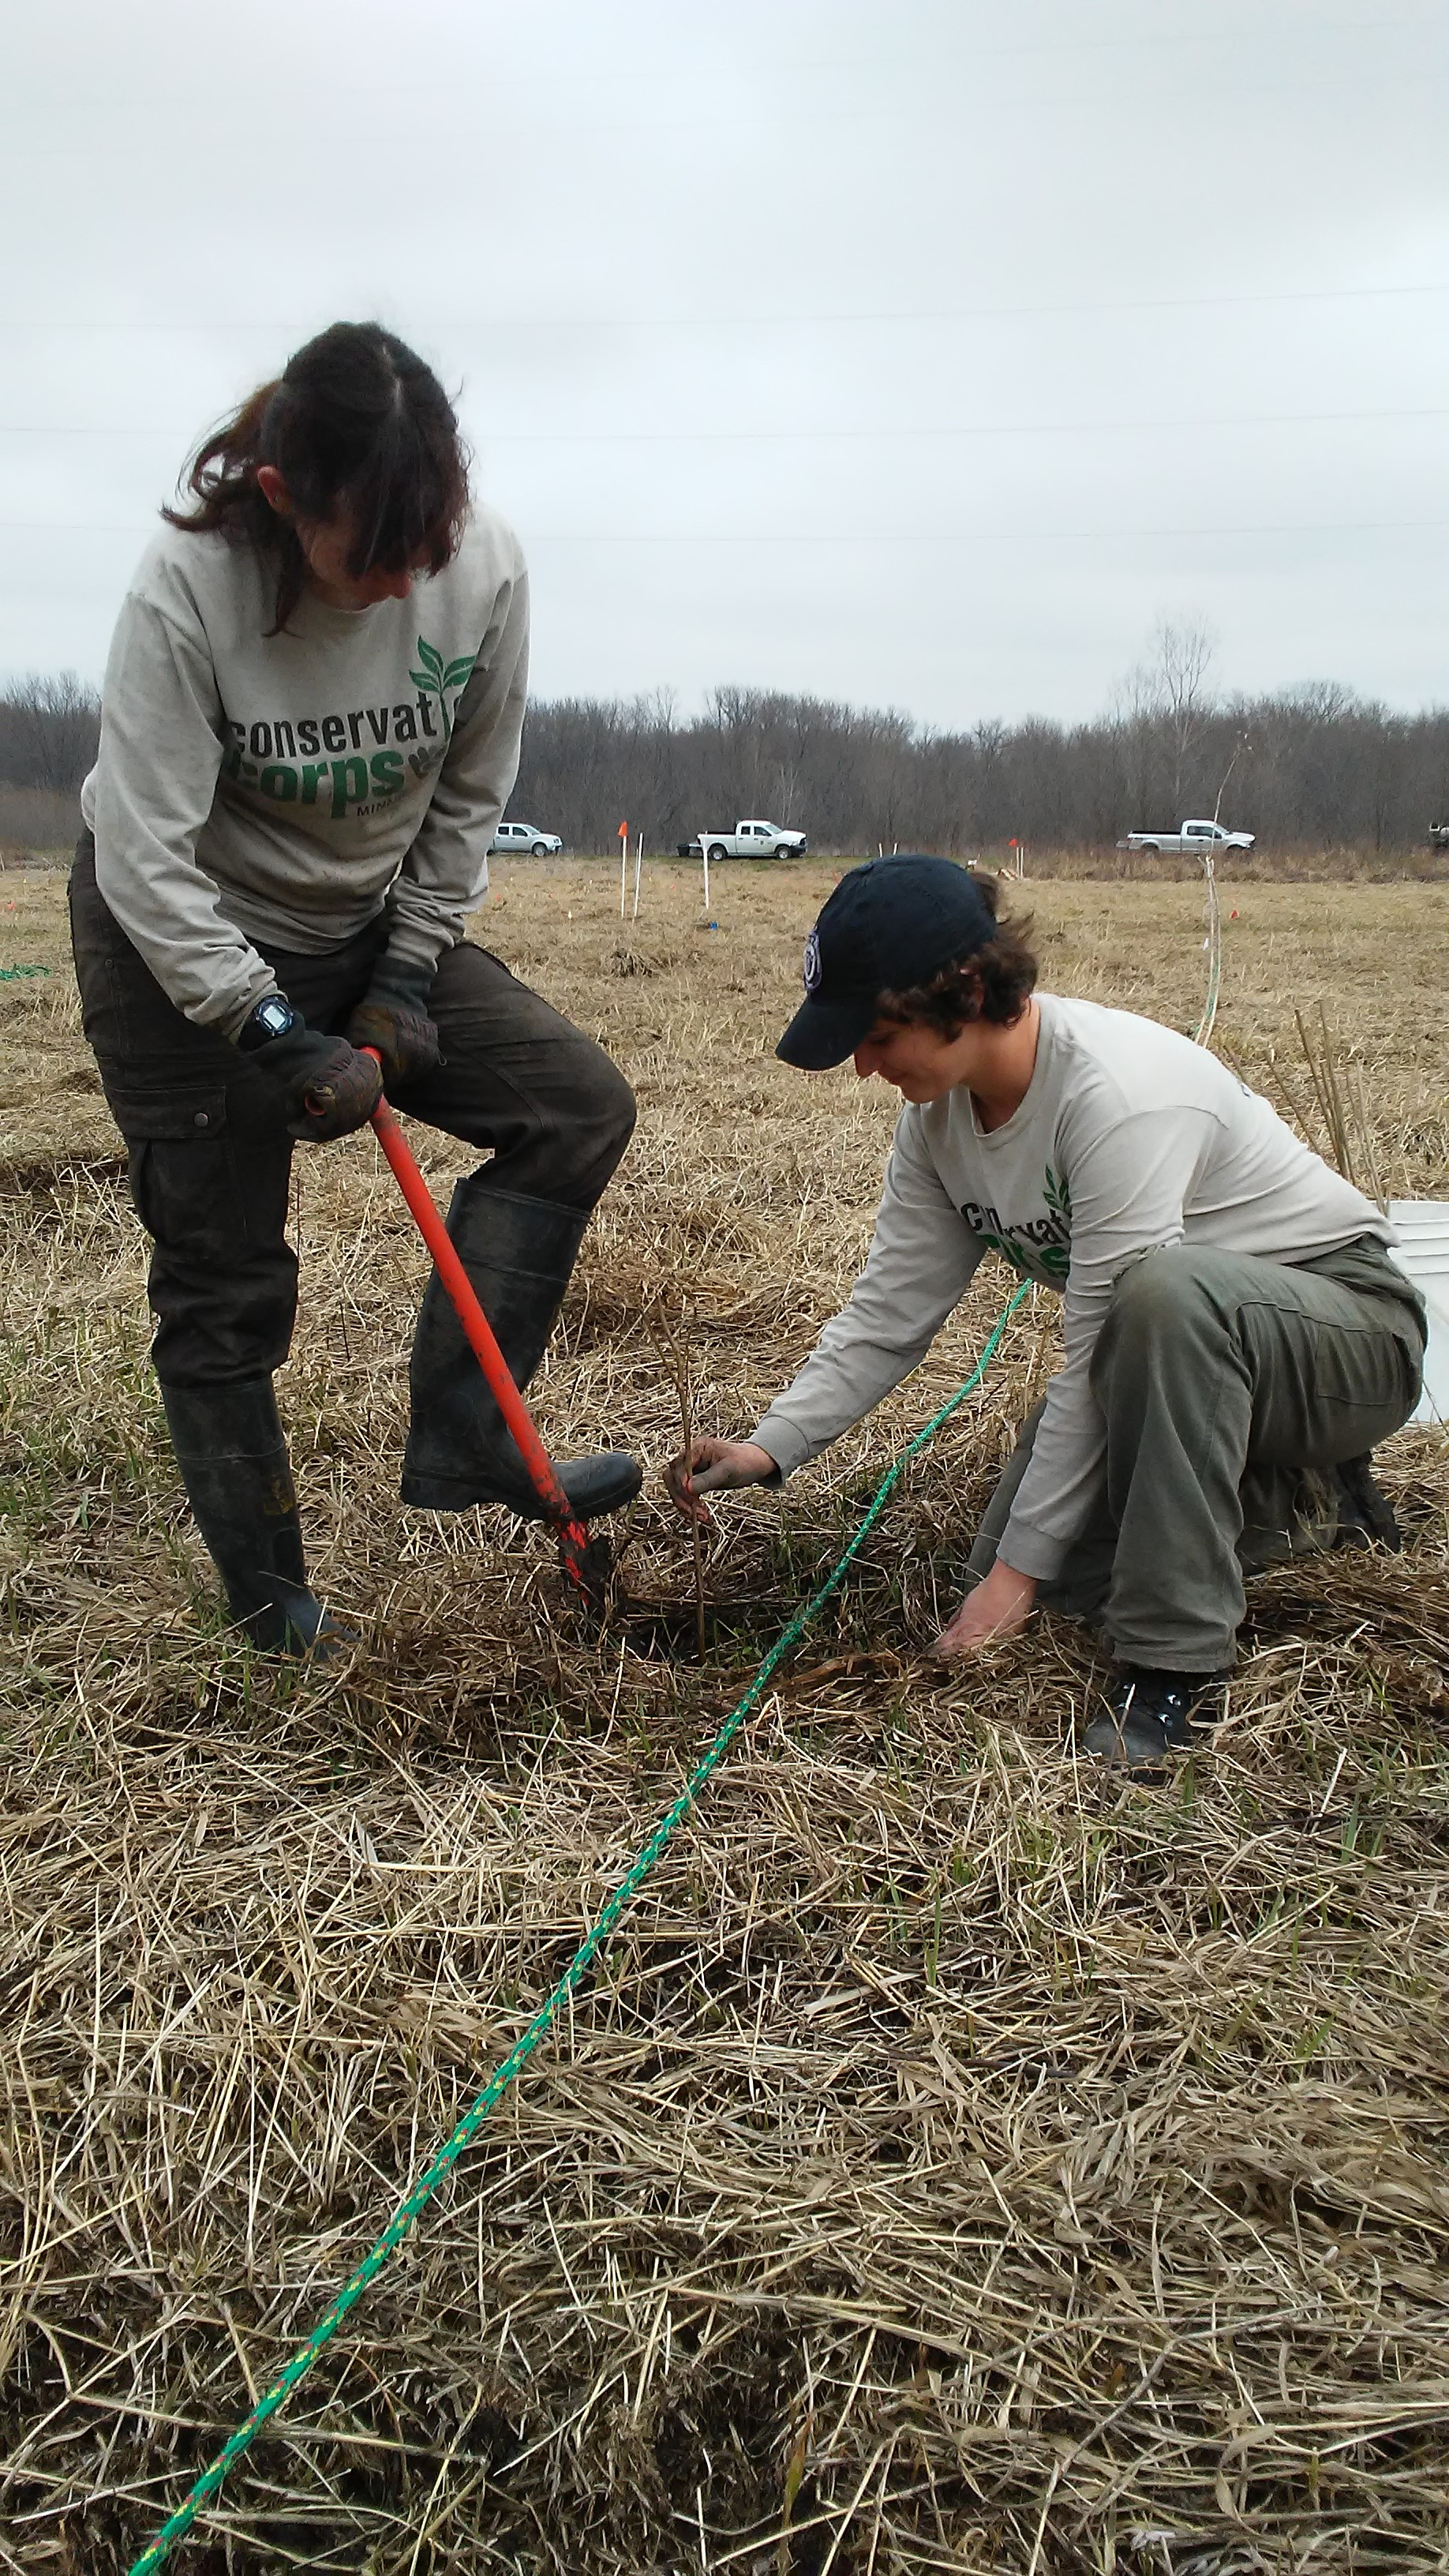 Conservation Corps members helped researchers plant over 12,000 trees in an exact scientific layout, guided by the rope to make sure planting lines were straight. Image courtesy of the author.